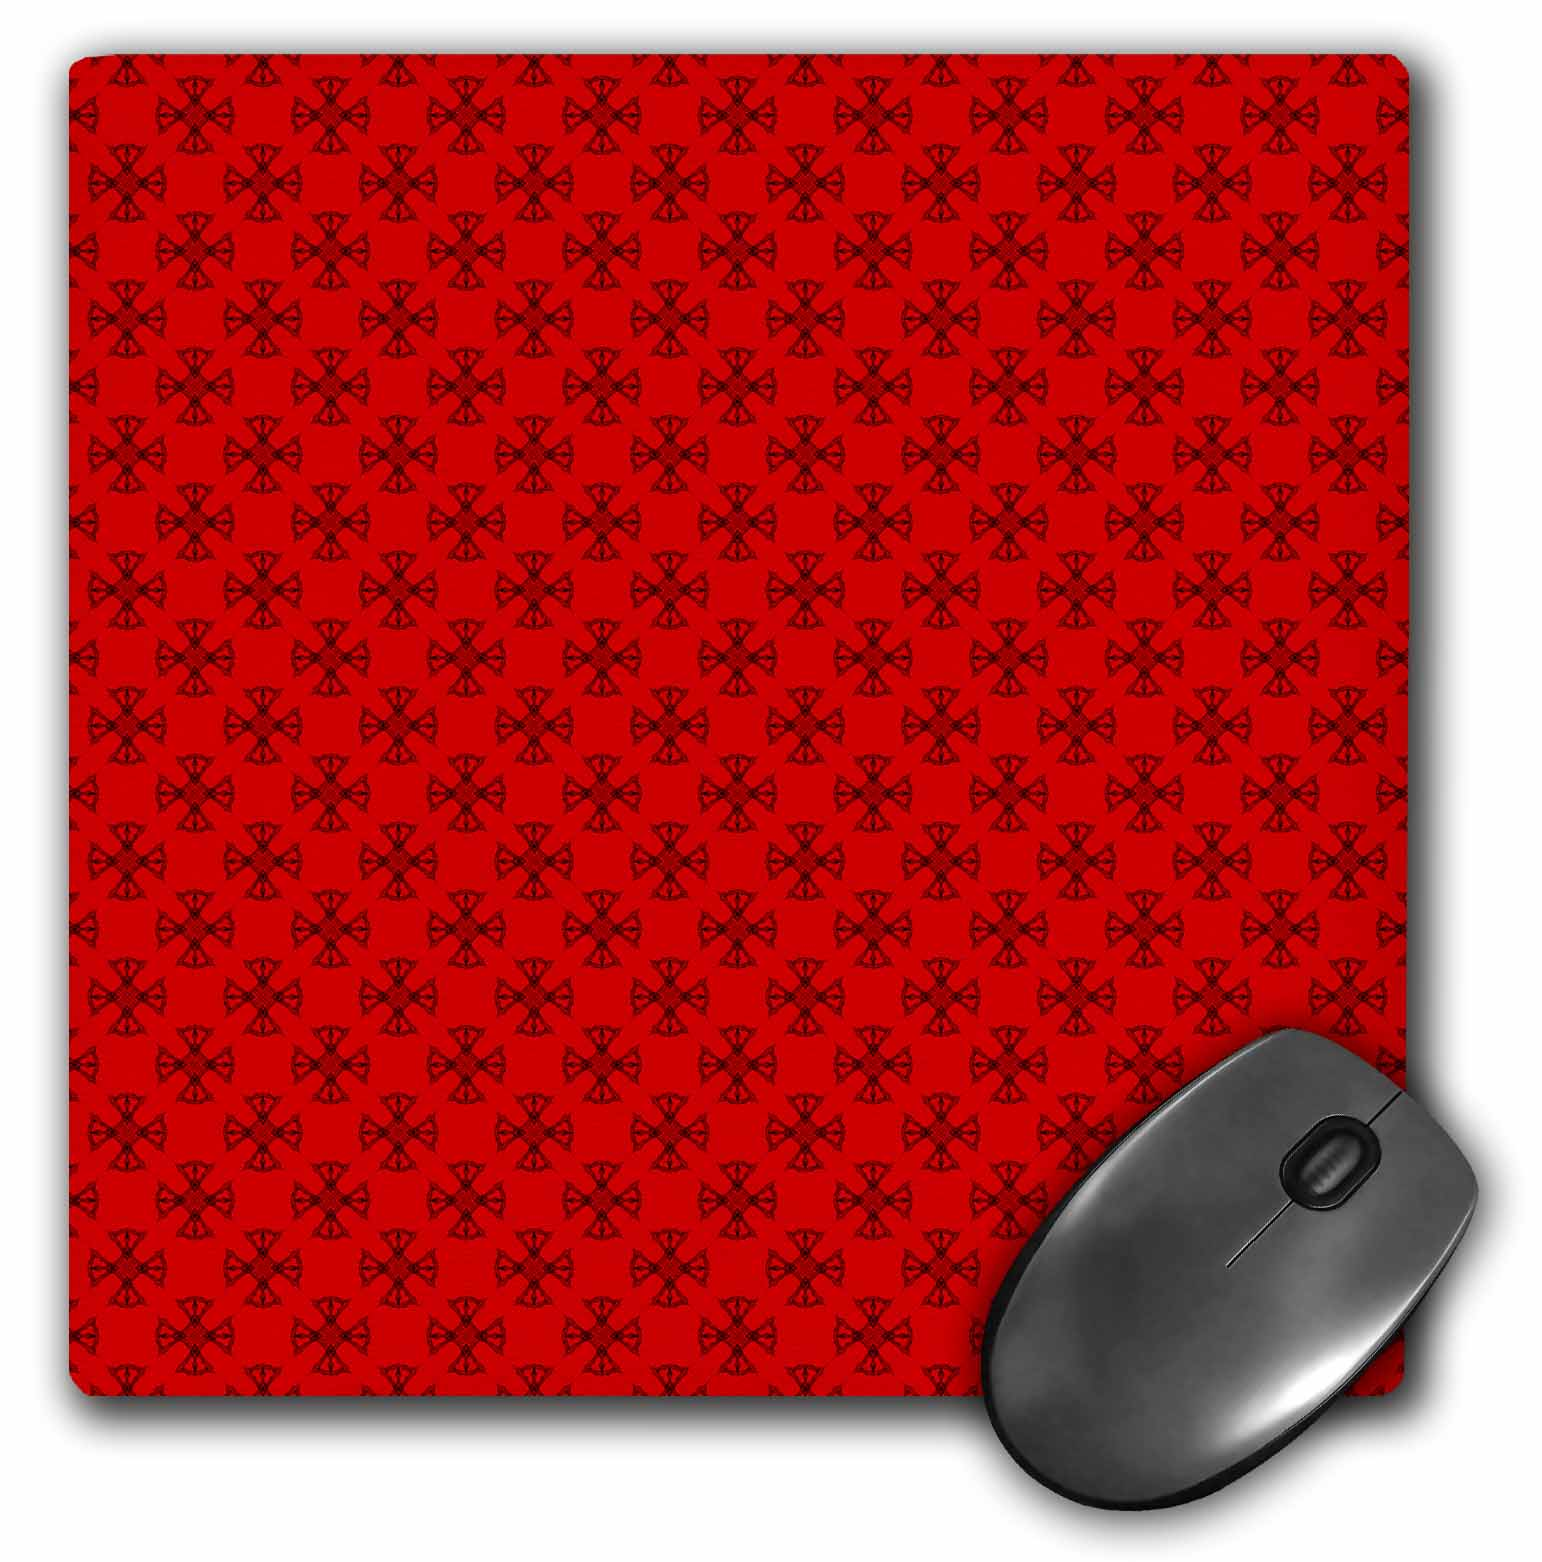 3dRose Red Fan Point Stars Pattern, Mouse Pad, 8 by 8 inches